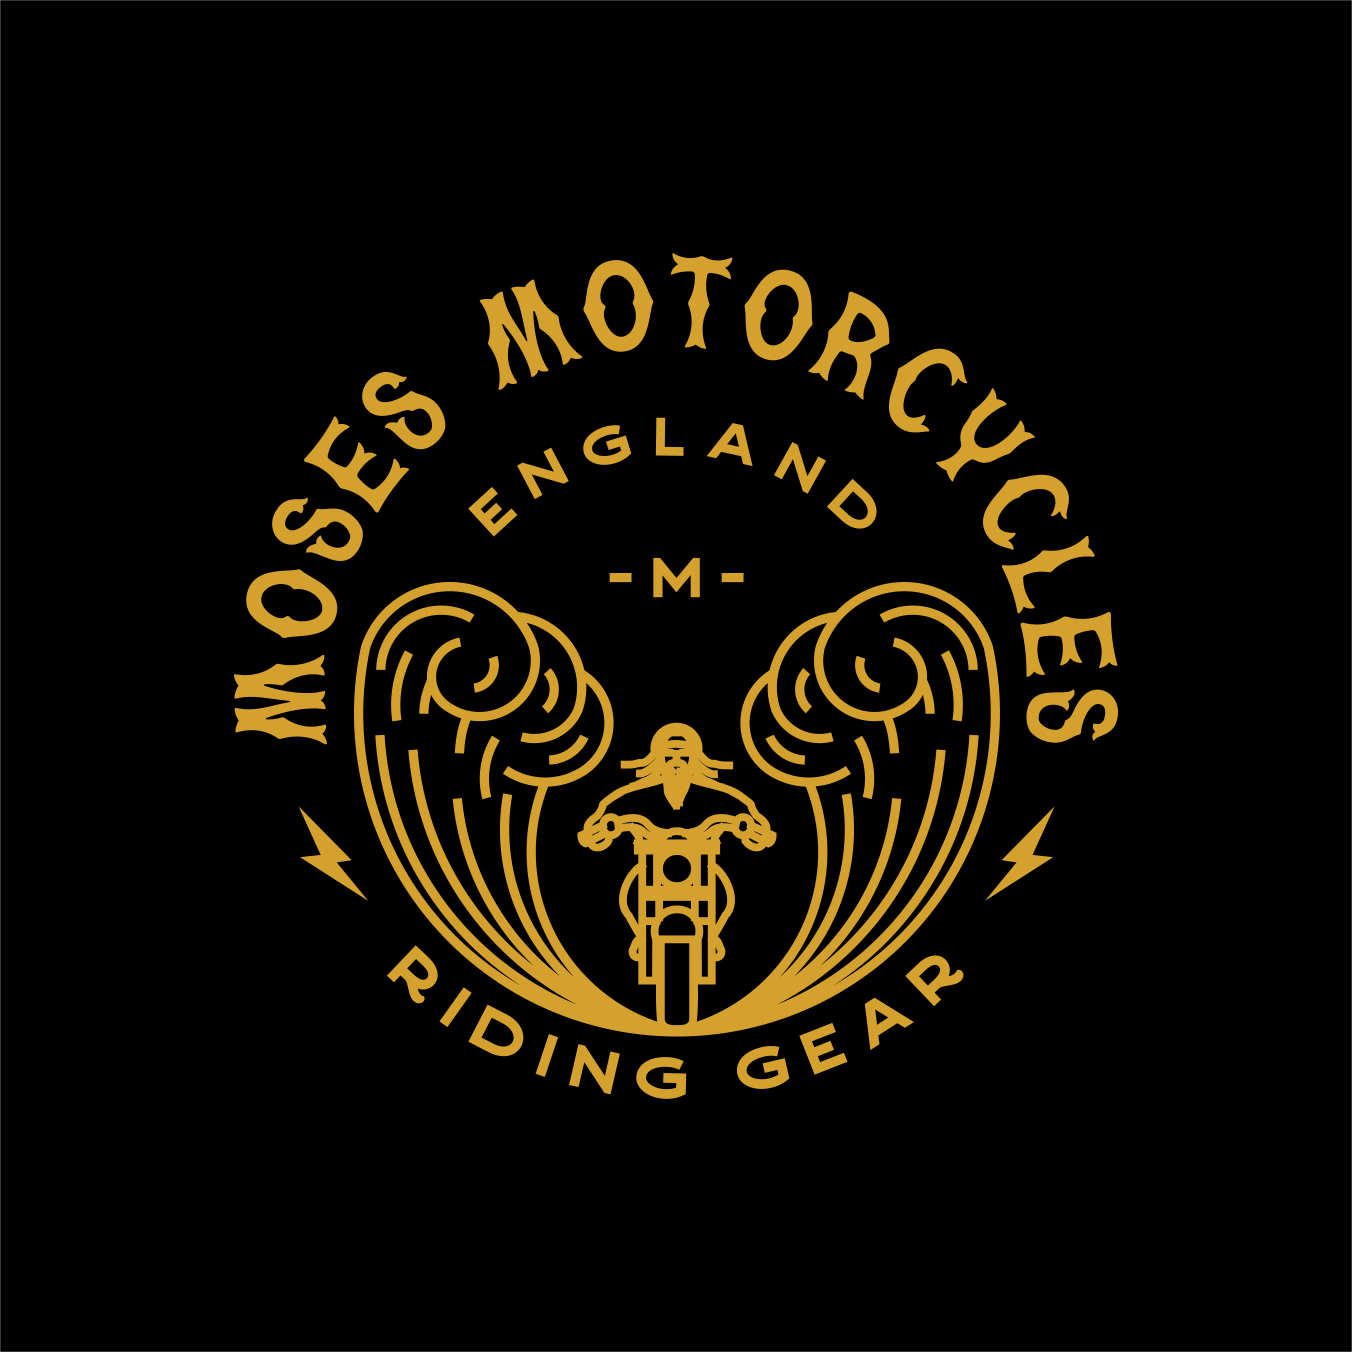 Create a Logo for cool style motorcycle clothing & apparel brand